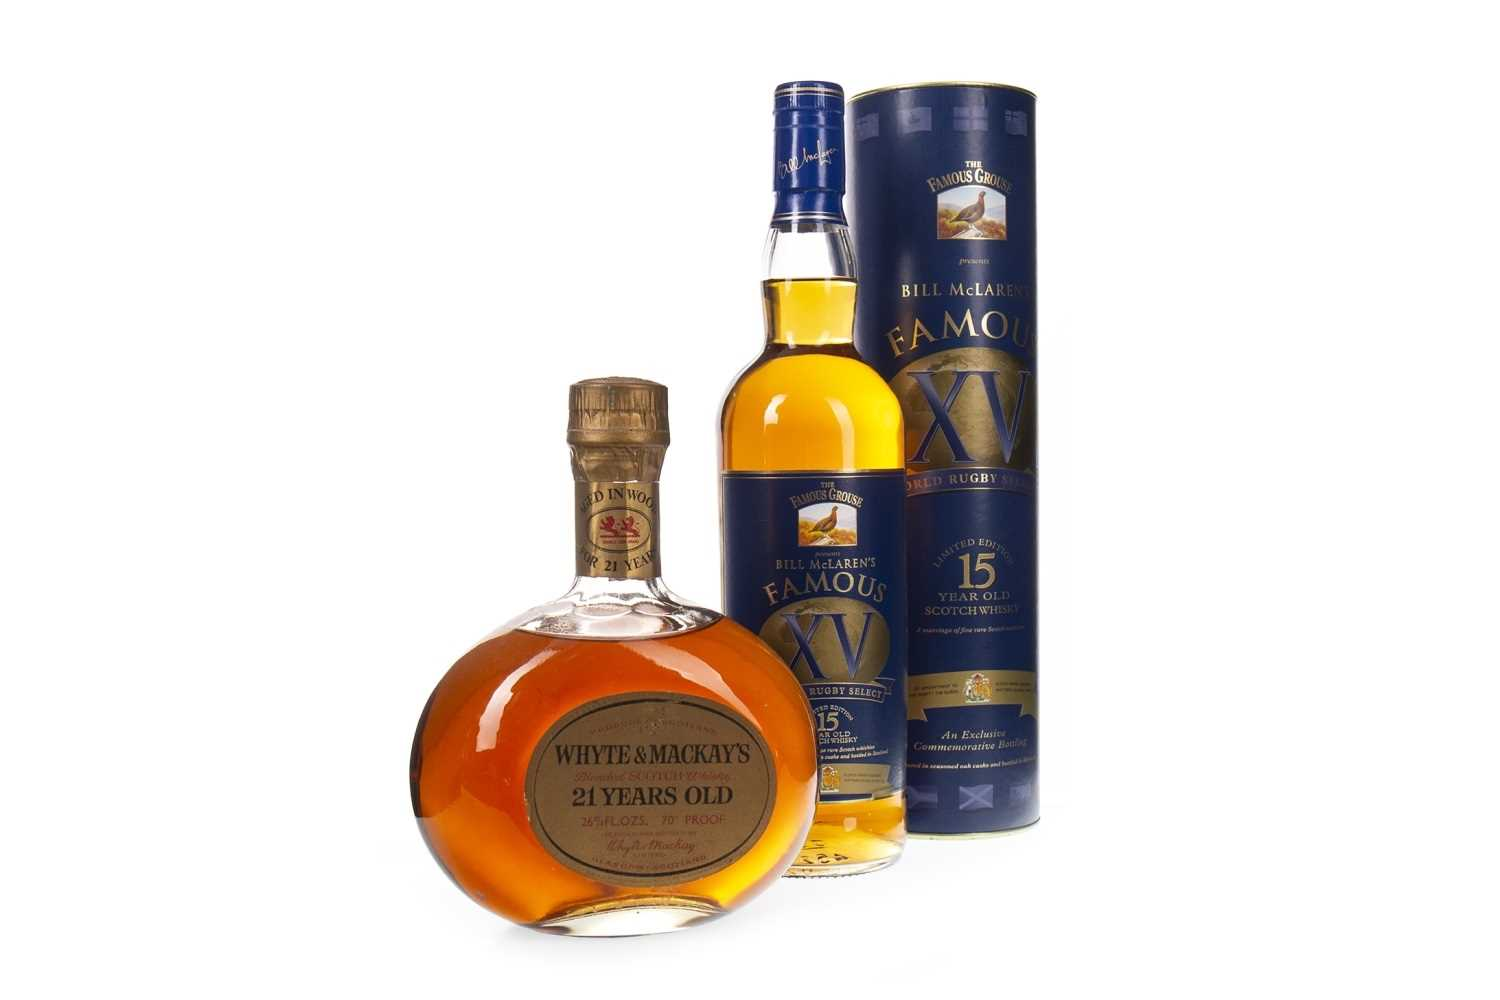 Lot 407-FAMOUS GROUSE 15 YEARS OLD AND WHYTE & MACKAY 21 YEARS OLD